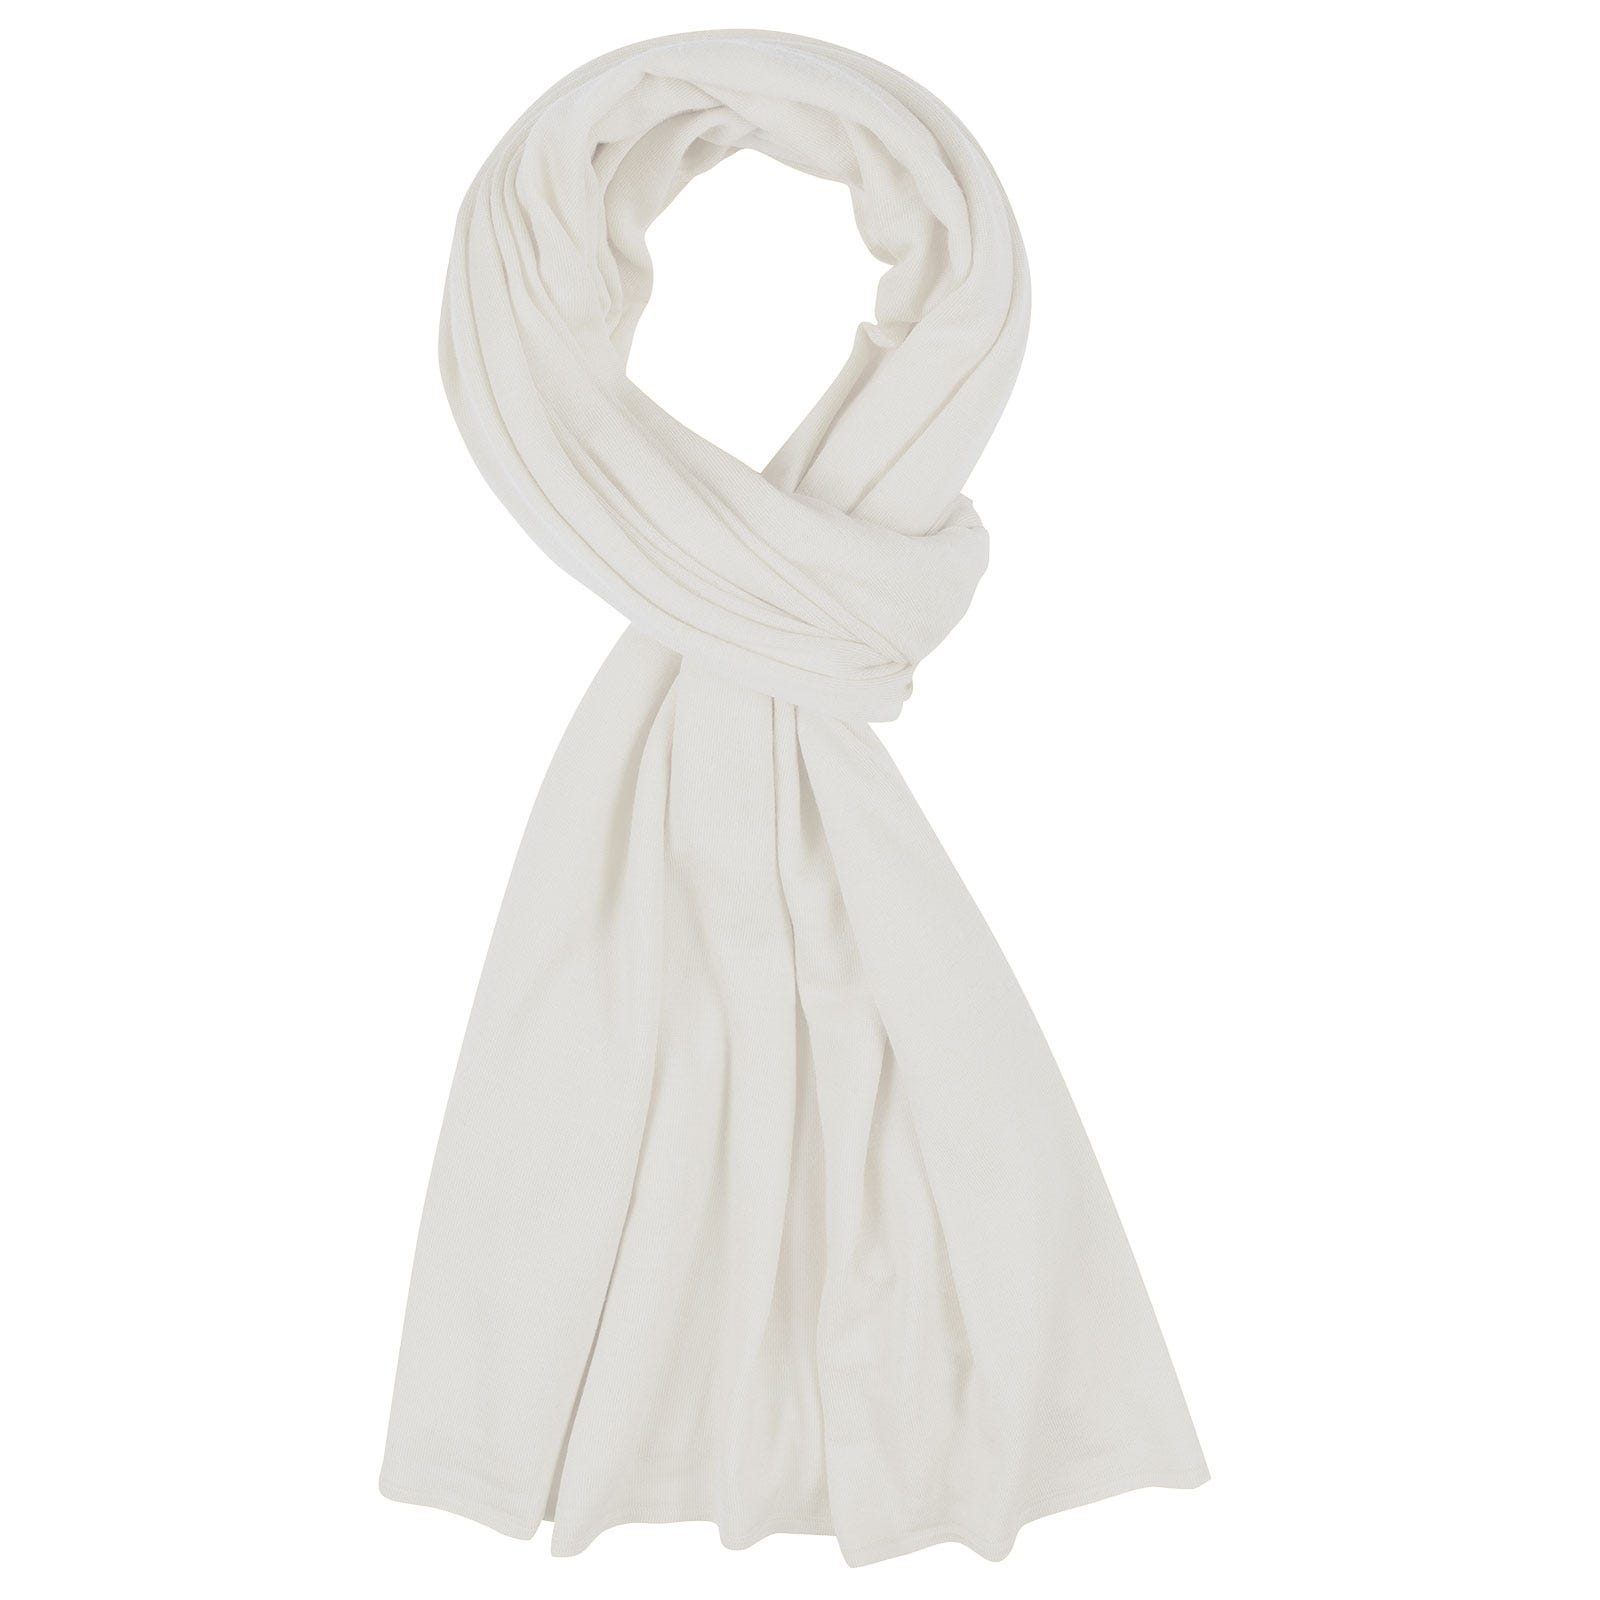 John Smedley Wings Merino Wool Shawl in Snow White-ONE